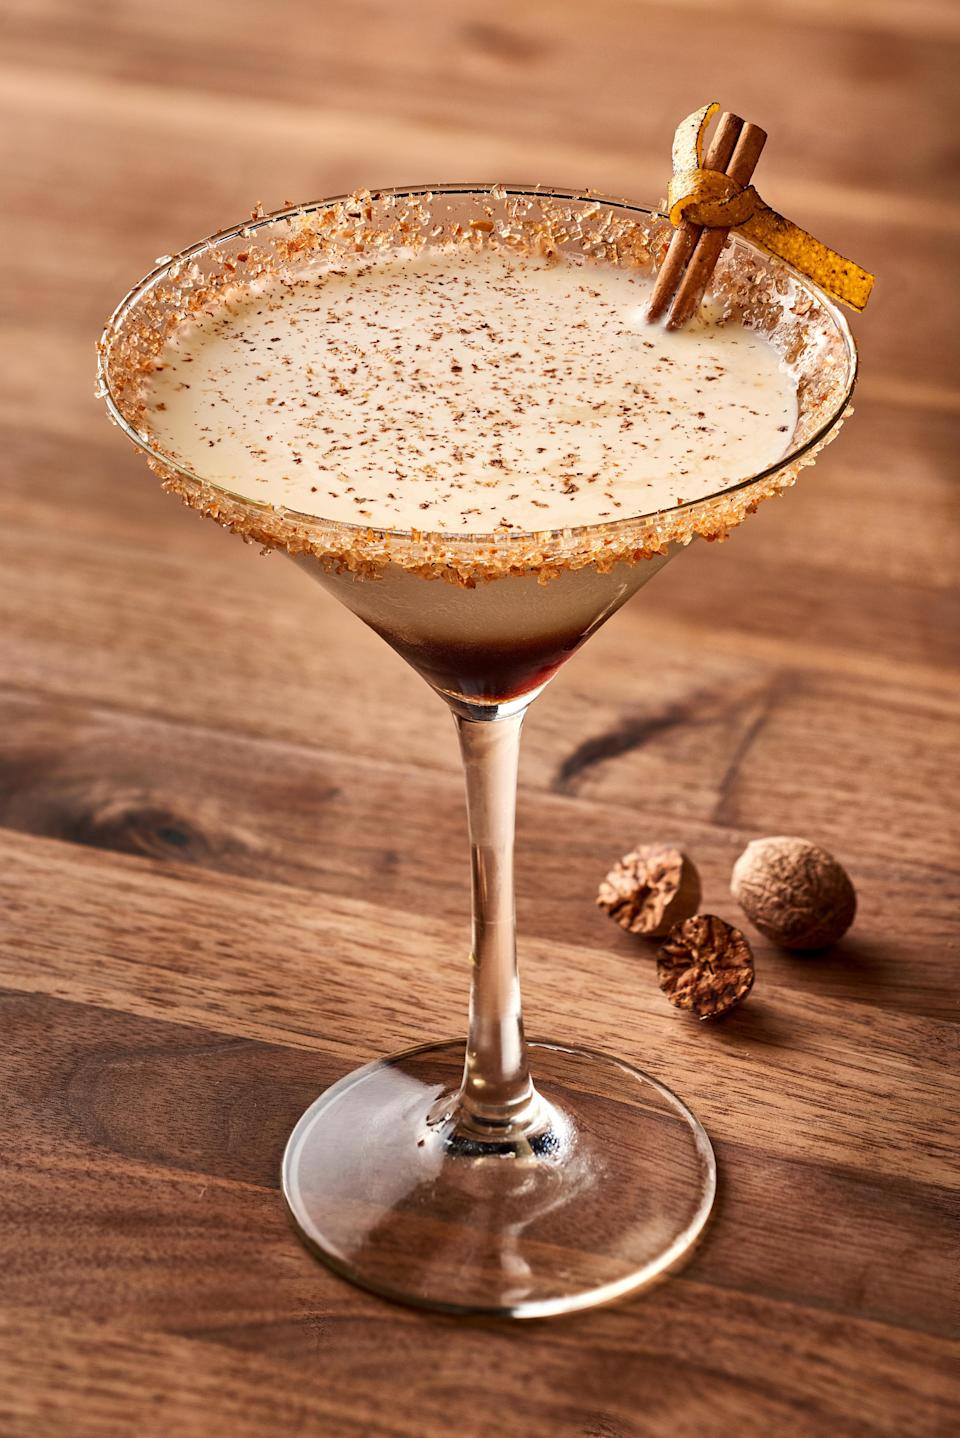 "<p>This cocktail will replace all other <a href=""https://www.thedailymeal.com/drink/coffee-types-explained?referrer=yahoo&category=beauty_food&include_utm=1&utm_medium=referral&utm_source=yahoo&utm_campaign=feed"" rel=""nofollow noopener"" target=""_blank"" data-ylk=""slk:coffee drinks"" class=""link rapid-noclick-resp"">coffee drinks</a>. The creamy seasonal White Russian recipe blends espresso liquor with pumpkin spice vodka, cinnamon simple syrup and milk. It's then topped with whipped cream and garnished with crushed graham crackers, making it the perfect dessert cocktail.</p> <p><a href=""https://www.thedailymeal.com/recipe/pumpkin-white-russian?referrer=yahoo&category=beauty_food&include_utm=1&utm_medium=referral&utm_source=yahoo&utm_campaign=feed"" rel=""nofollow noopener"" target=""_blank"" data-ylk=""slk:For the Pumpkin White Russian recipe, click here."" class=""link rapid-noclick-resp"">For the Pumpkin White Russian recipe, click here.</a></p>"